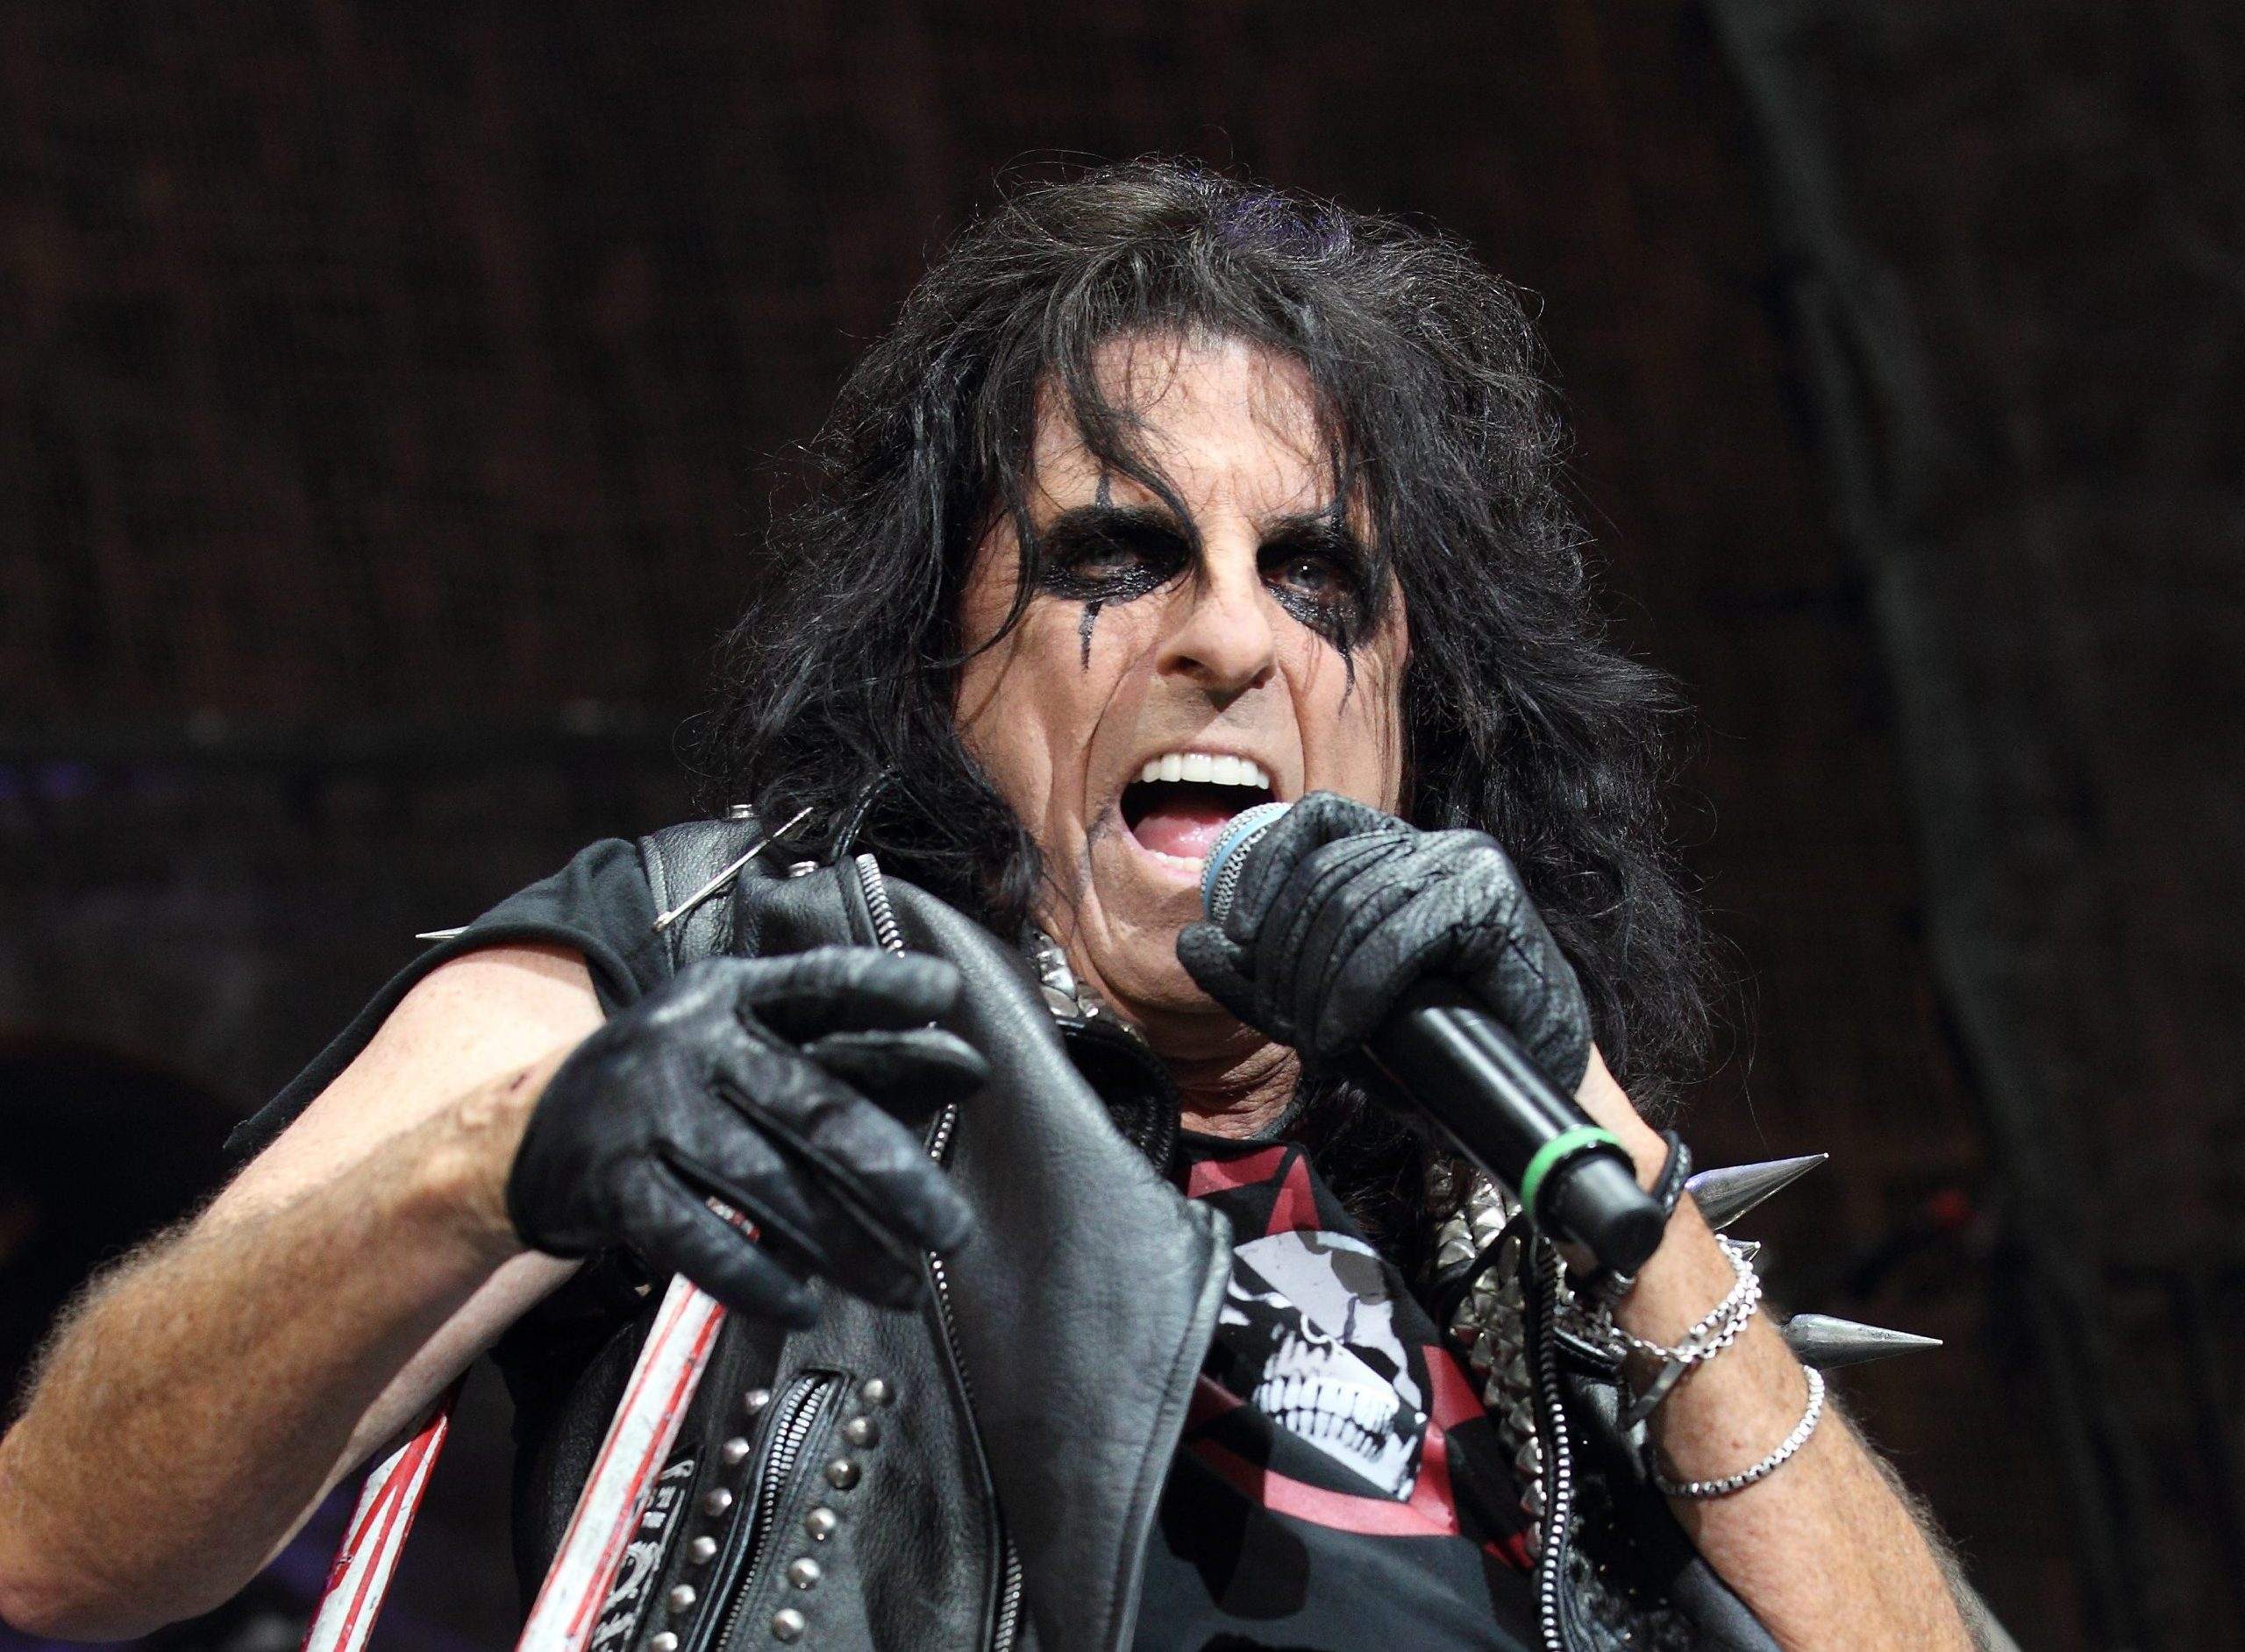 Alice Cooper calls Chris Cornell 'the best voice in rock and roll' in touching tribute